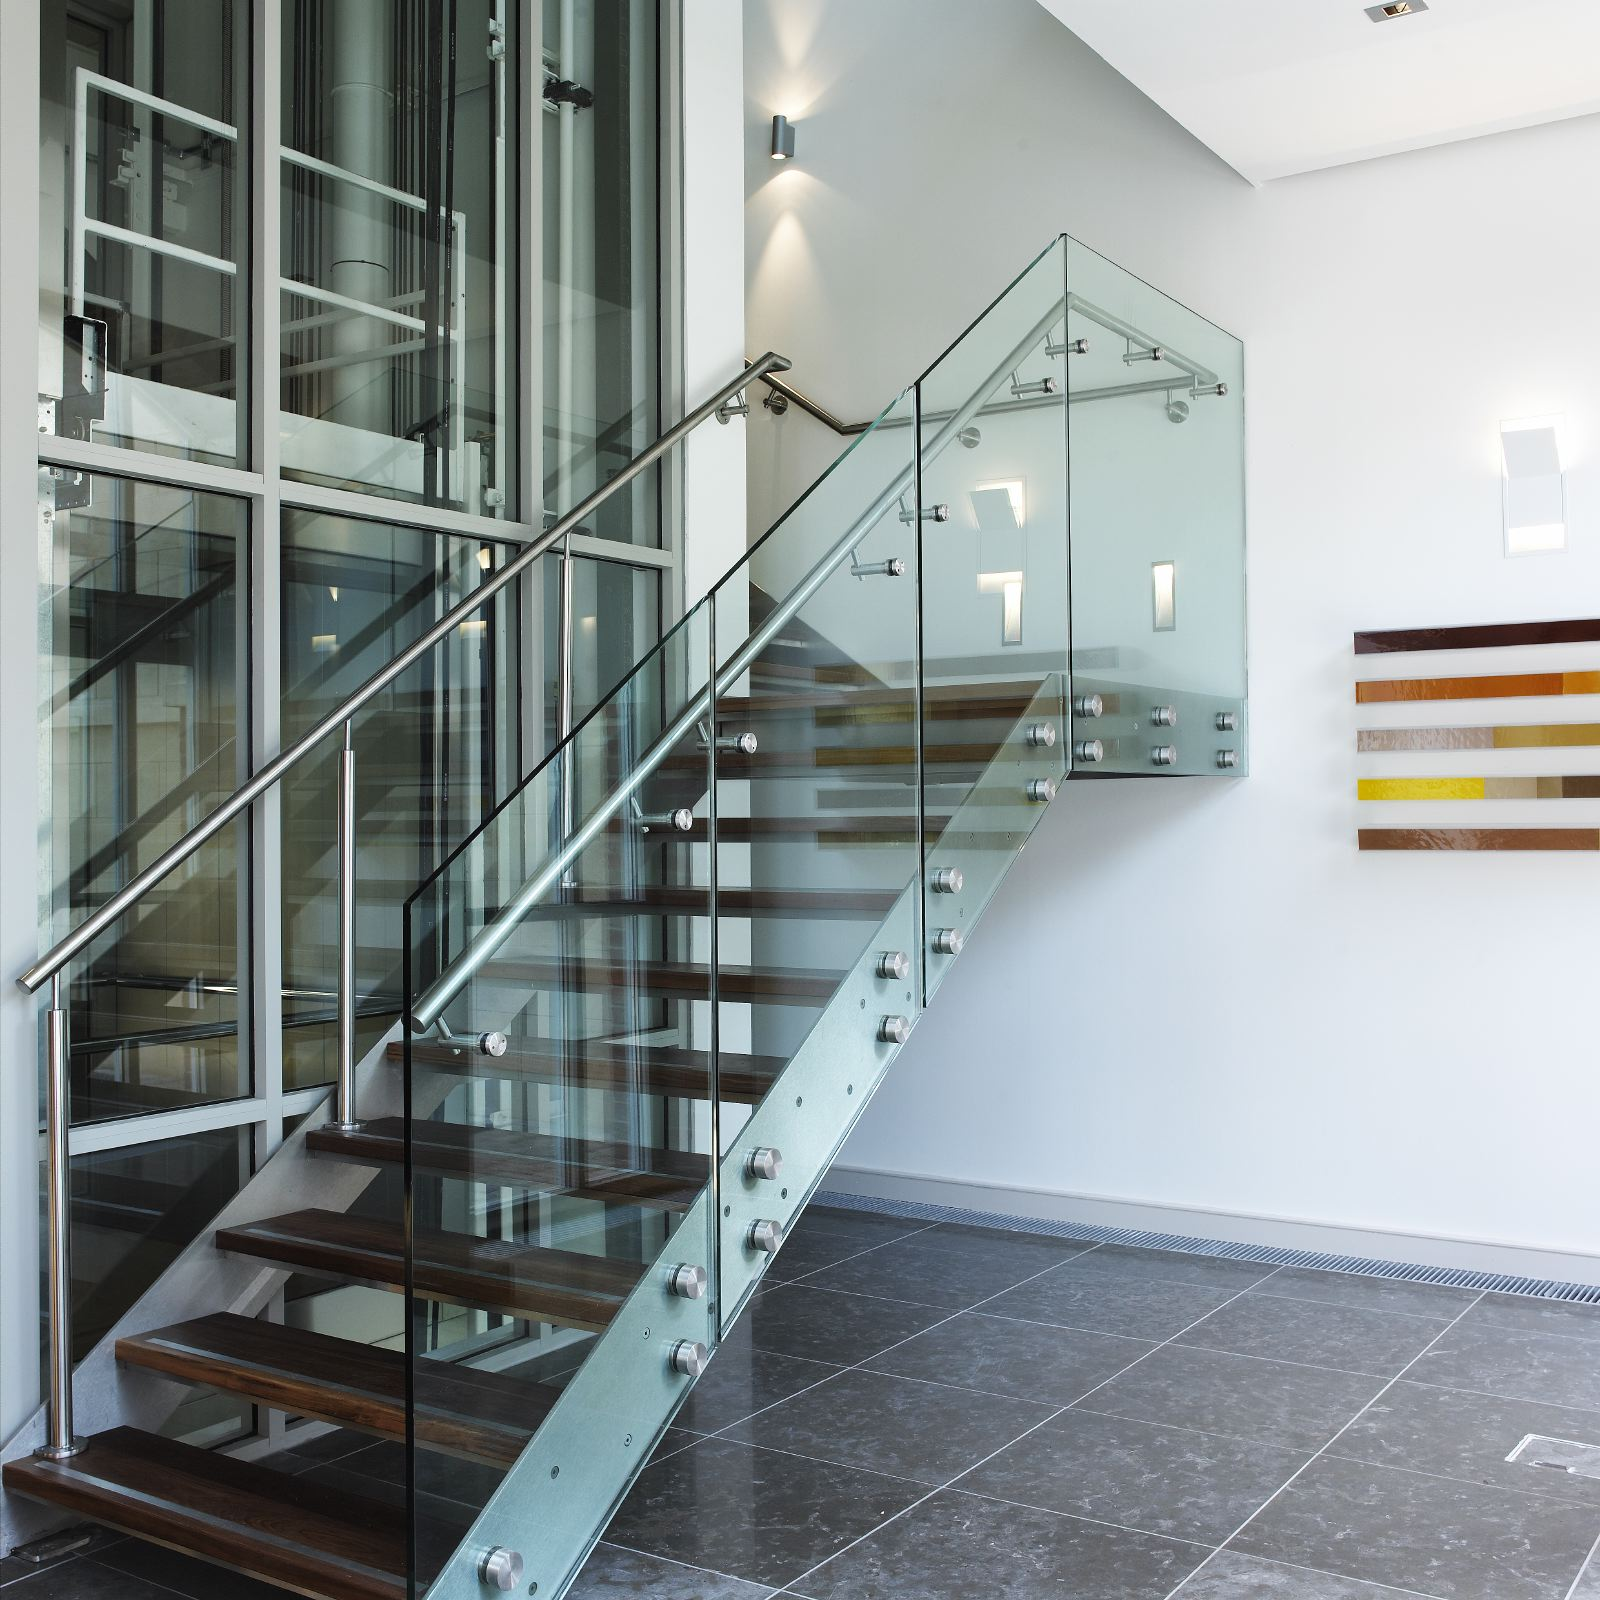 22 Modern Innovative Staircase Ideas: Stairs And Balustarde Railings